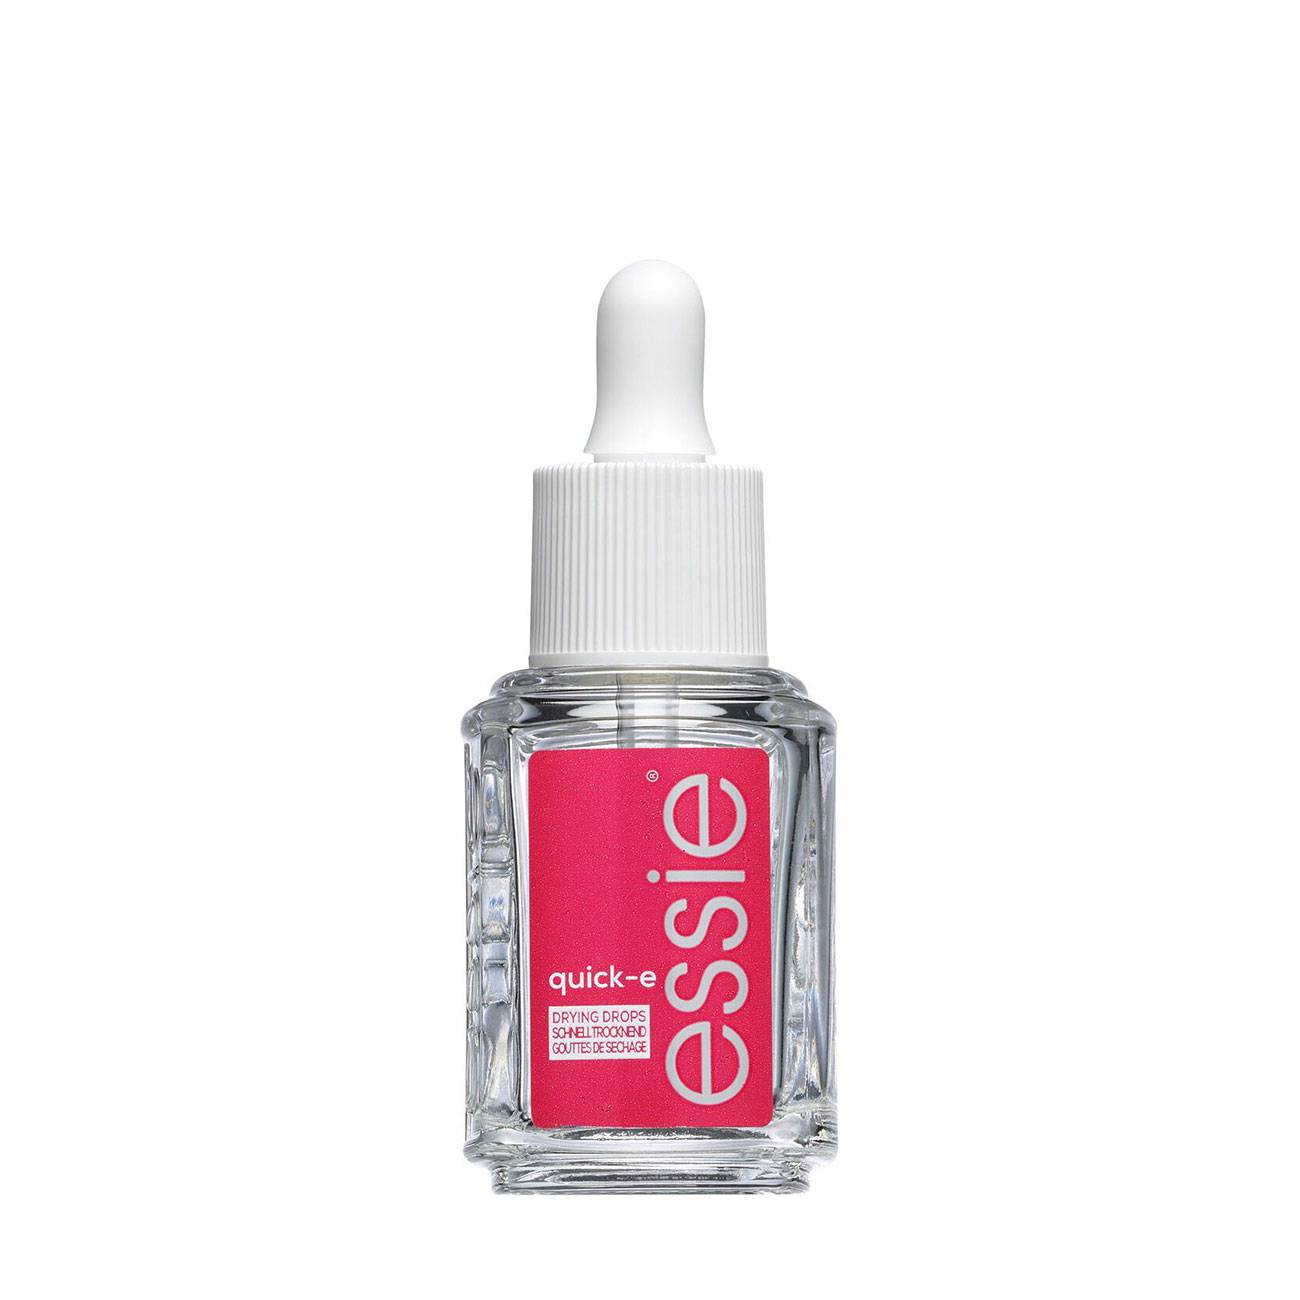 Top Coat Quick E Drying Drops 14ml Essie imagine 2021 bestvalue.eu